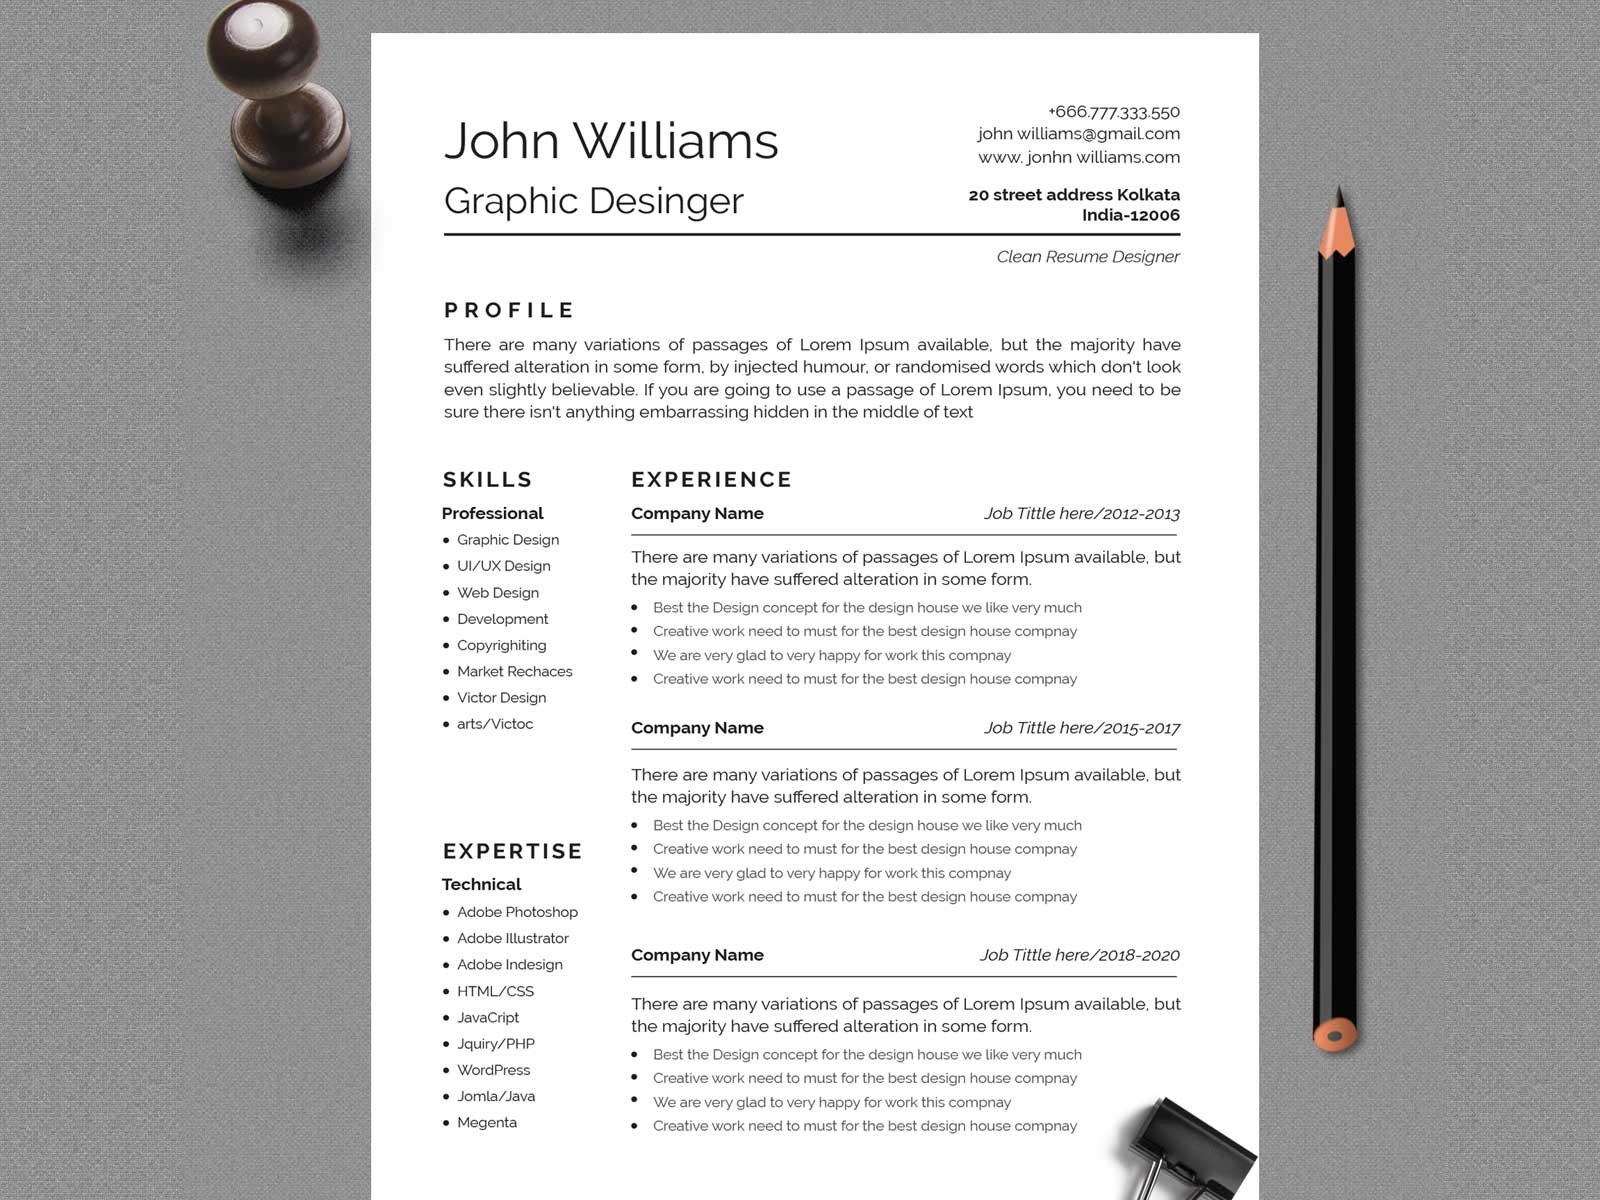 Clean And Professional Resume Design By Masud Rana On Dribbble